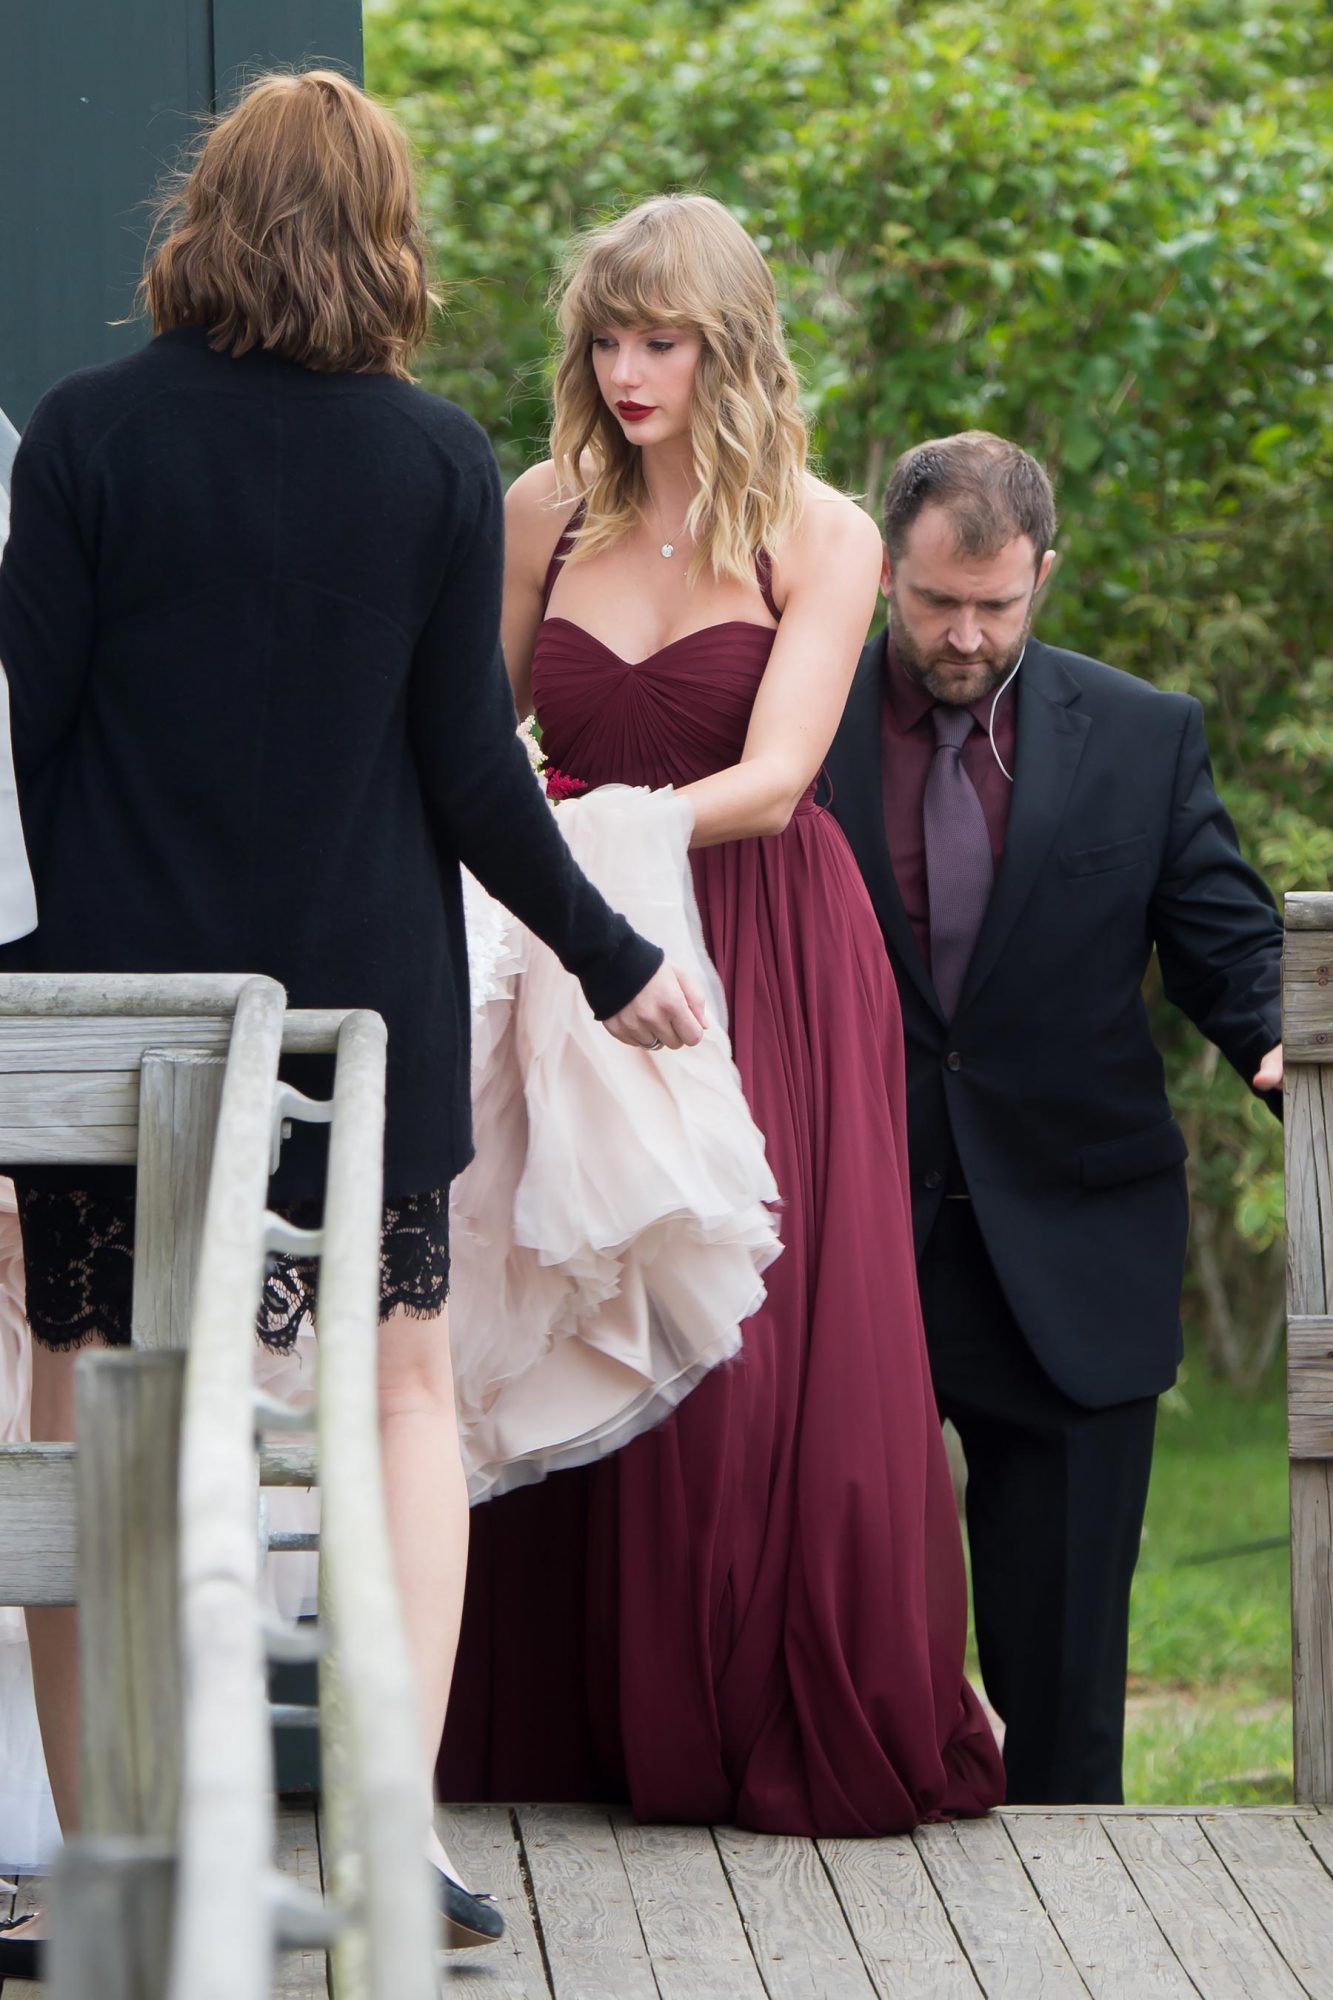 Taylor Swift is seen carrying the back of her BFF Abigail's wedding dress as they arrive at a church in Martha's Vineyard